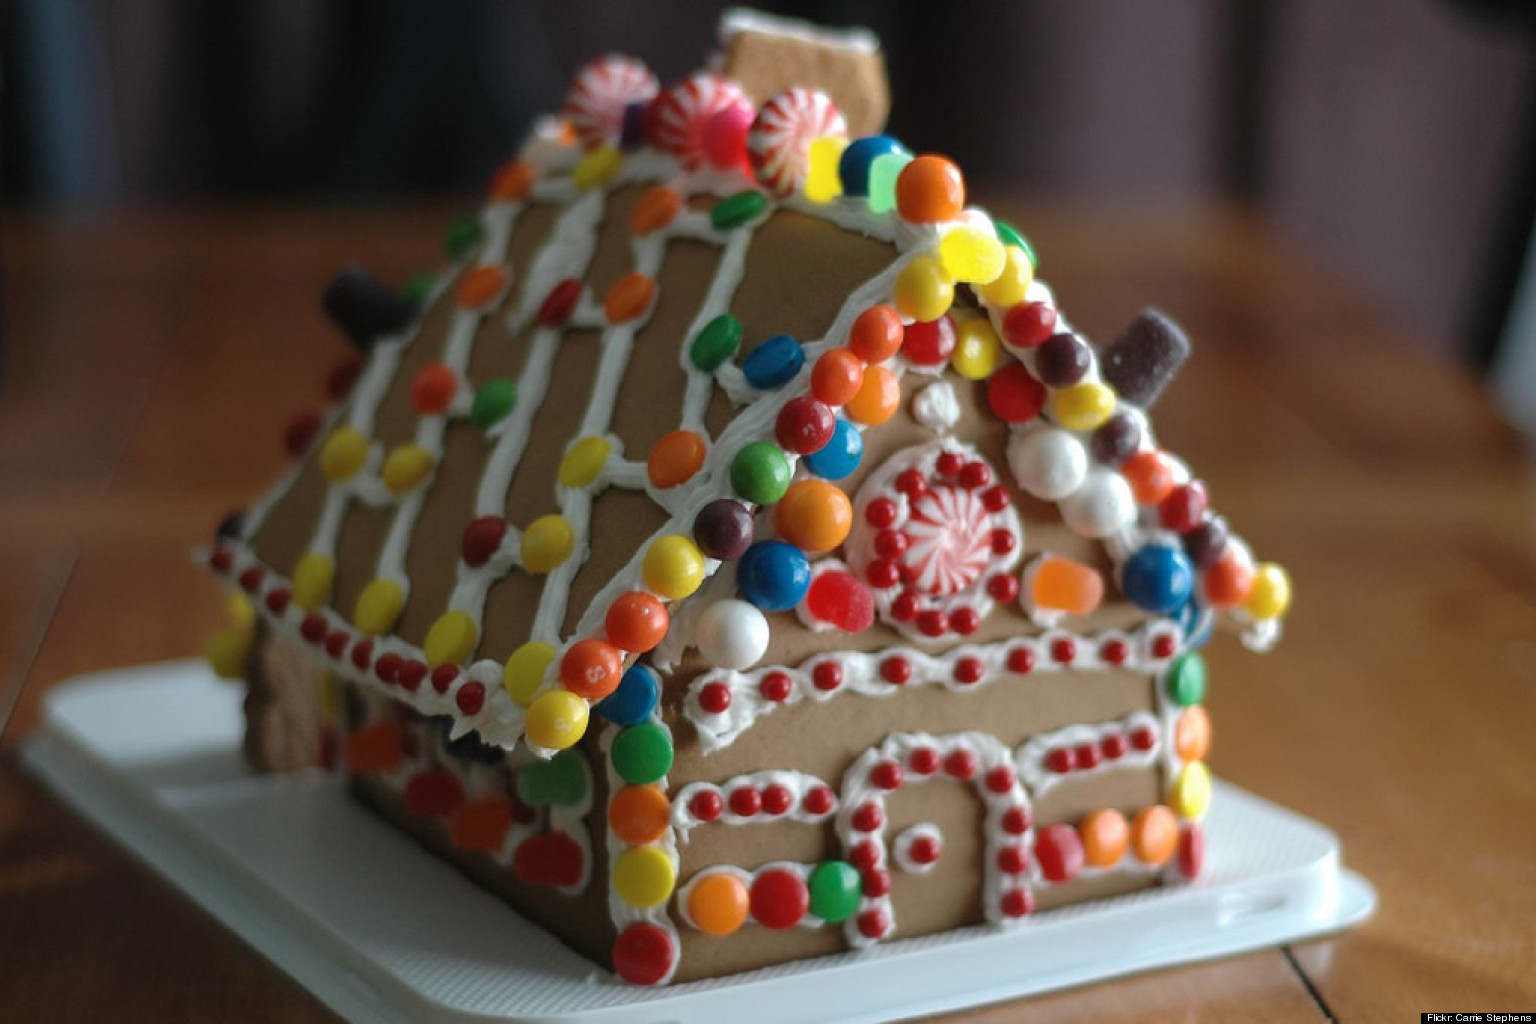 o-GINGERBREAD-HOUSE-CALCULATOR-facebook.jpg